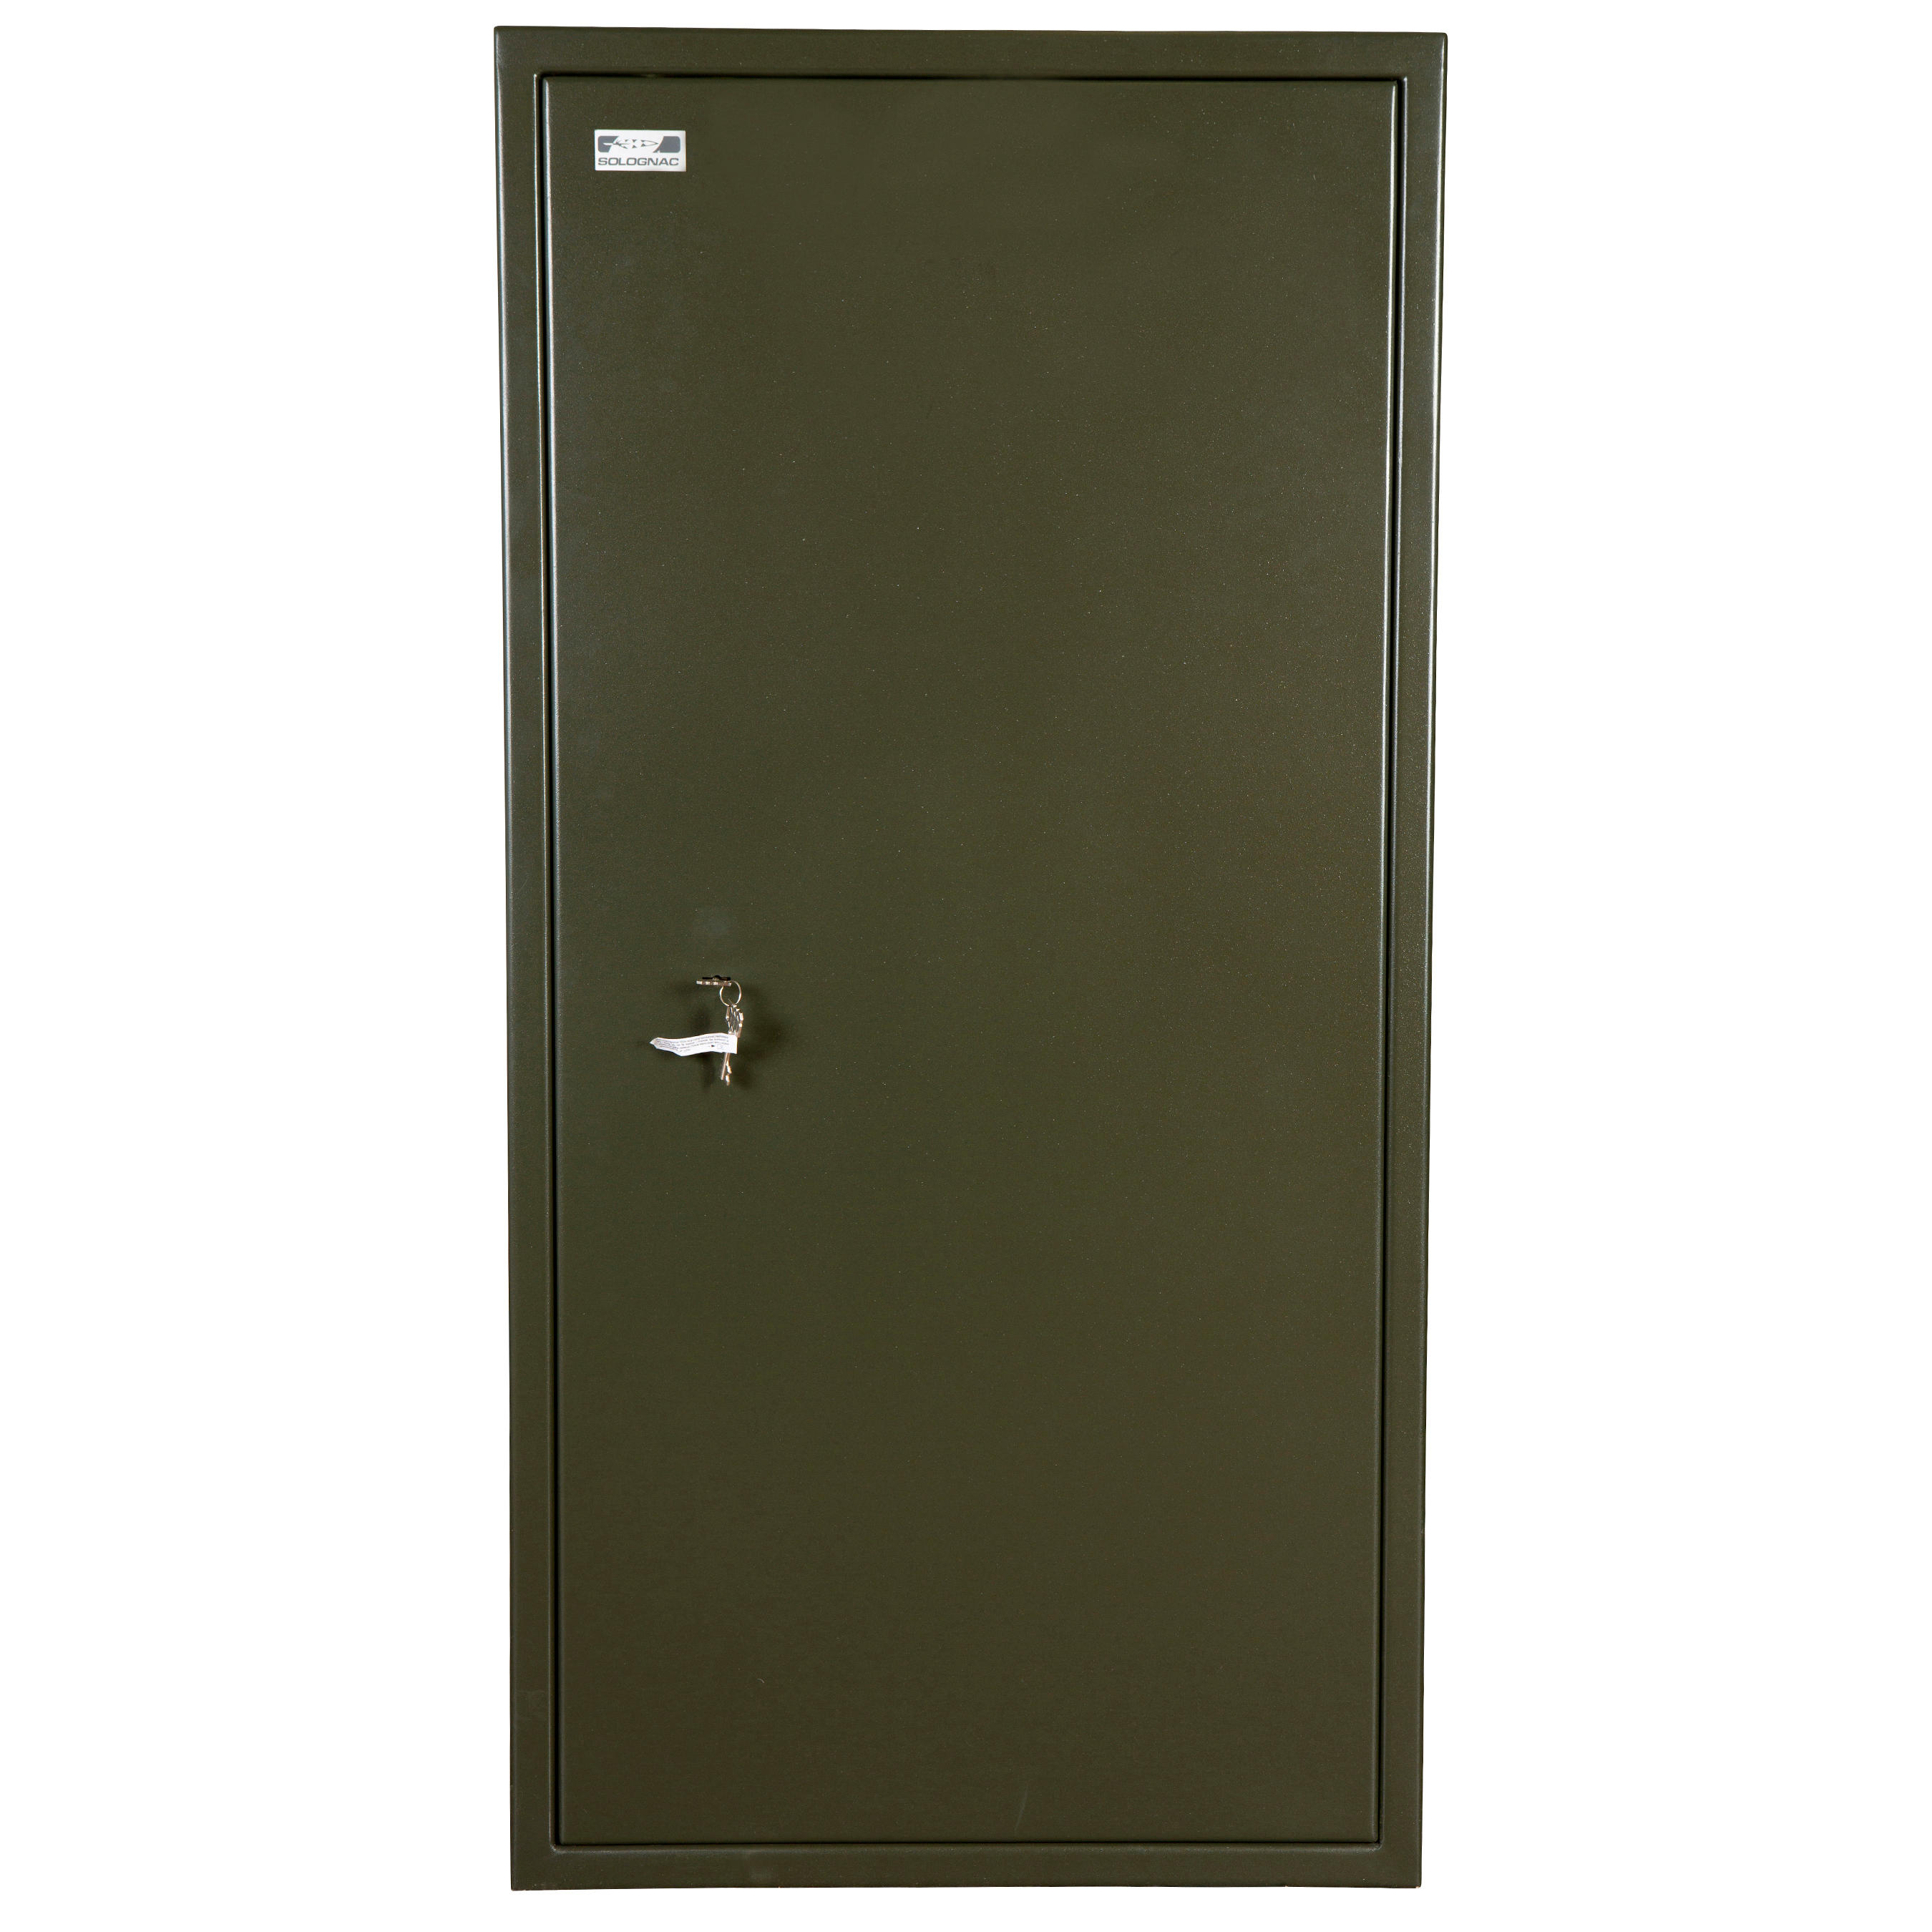 armoire forte fusil armoire forte fusil with armoire. Black Bedroom Furniture Sets. Home Design Ideas